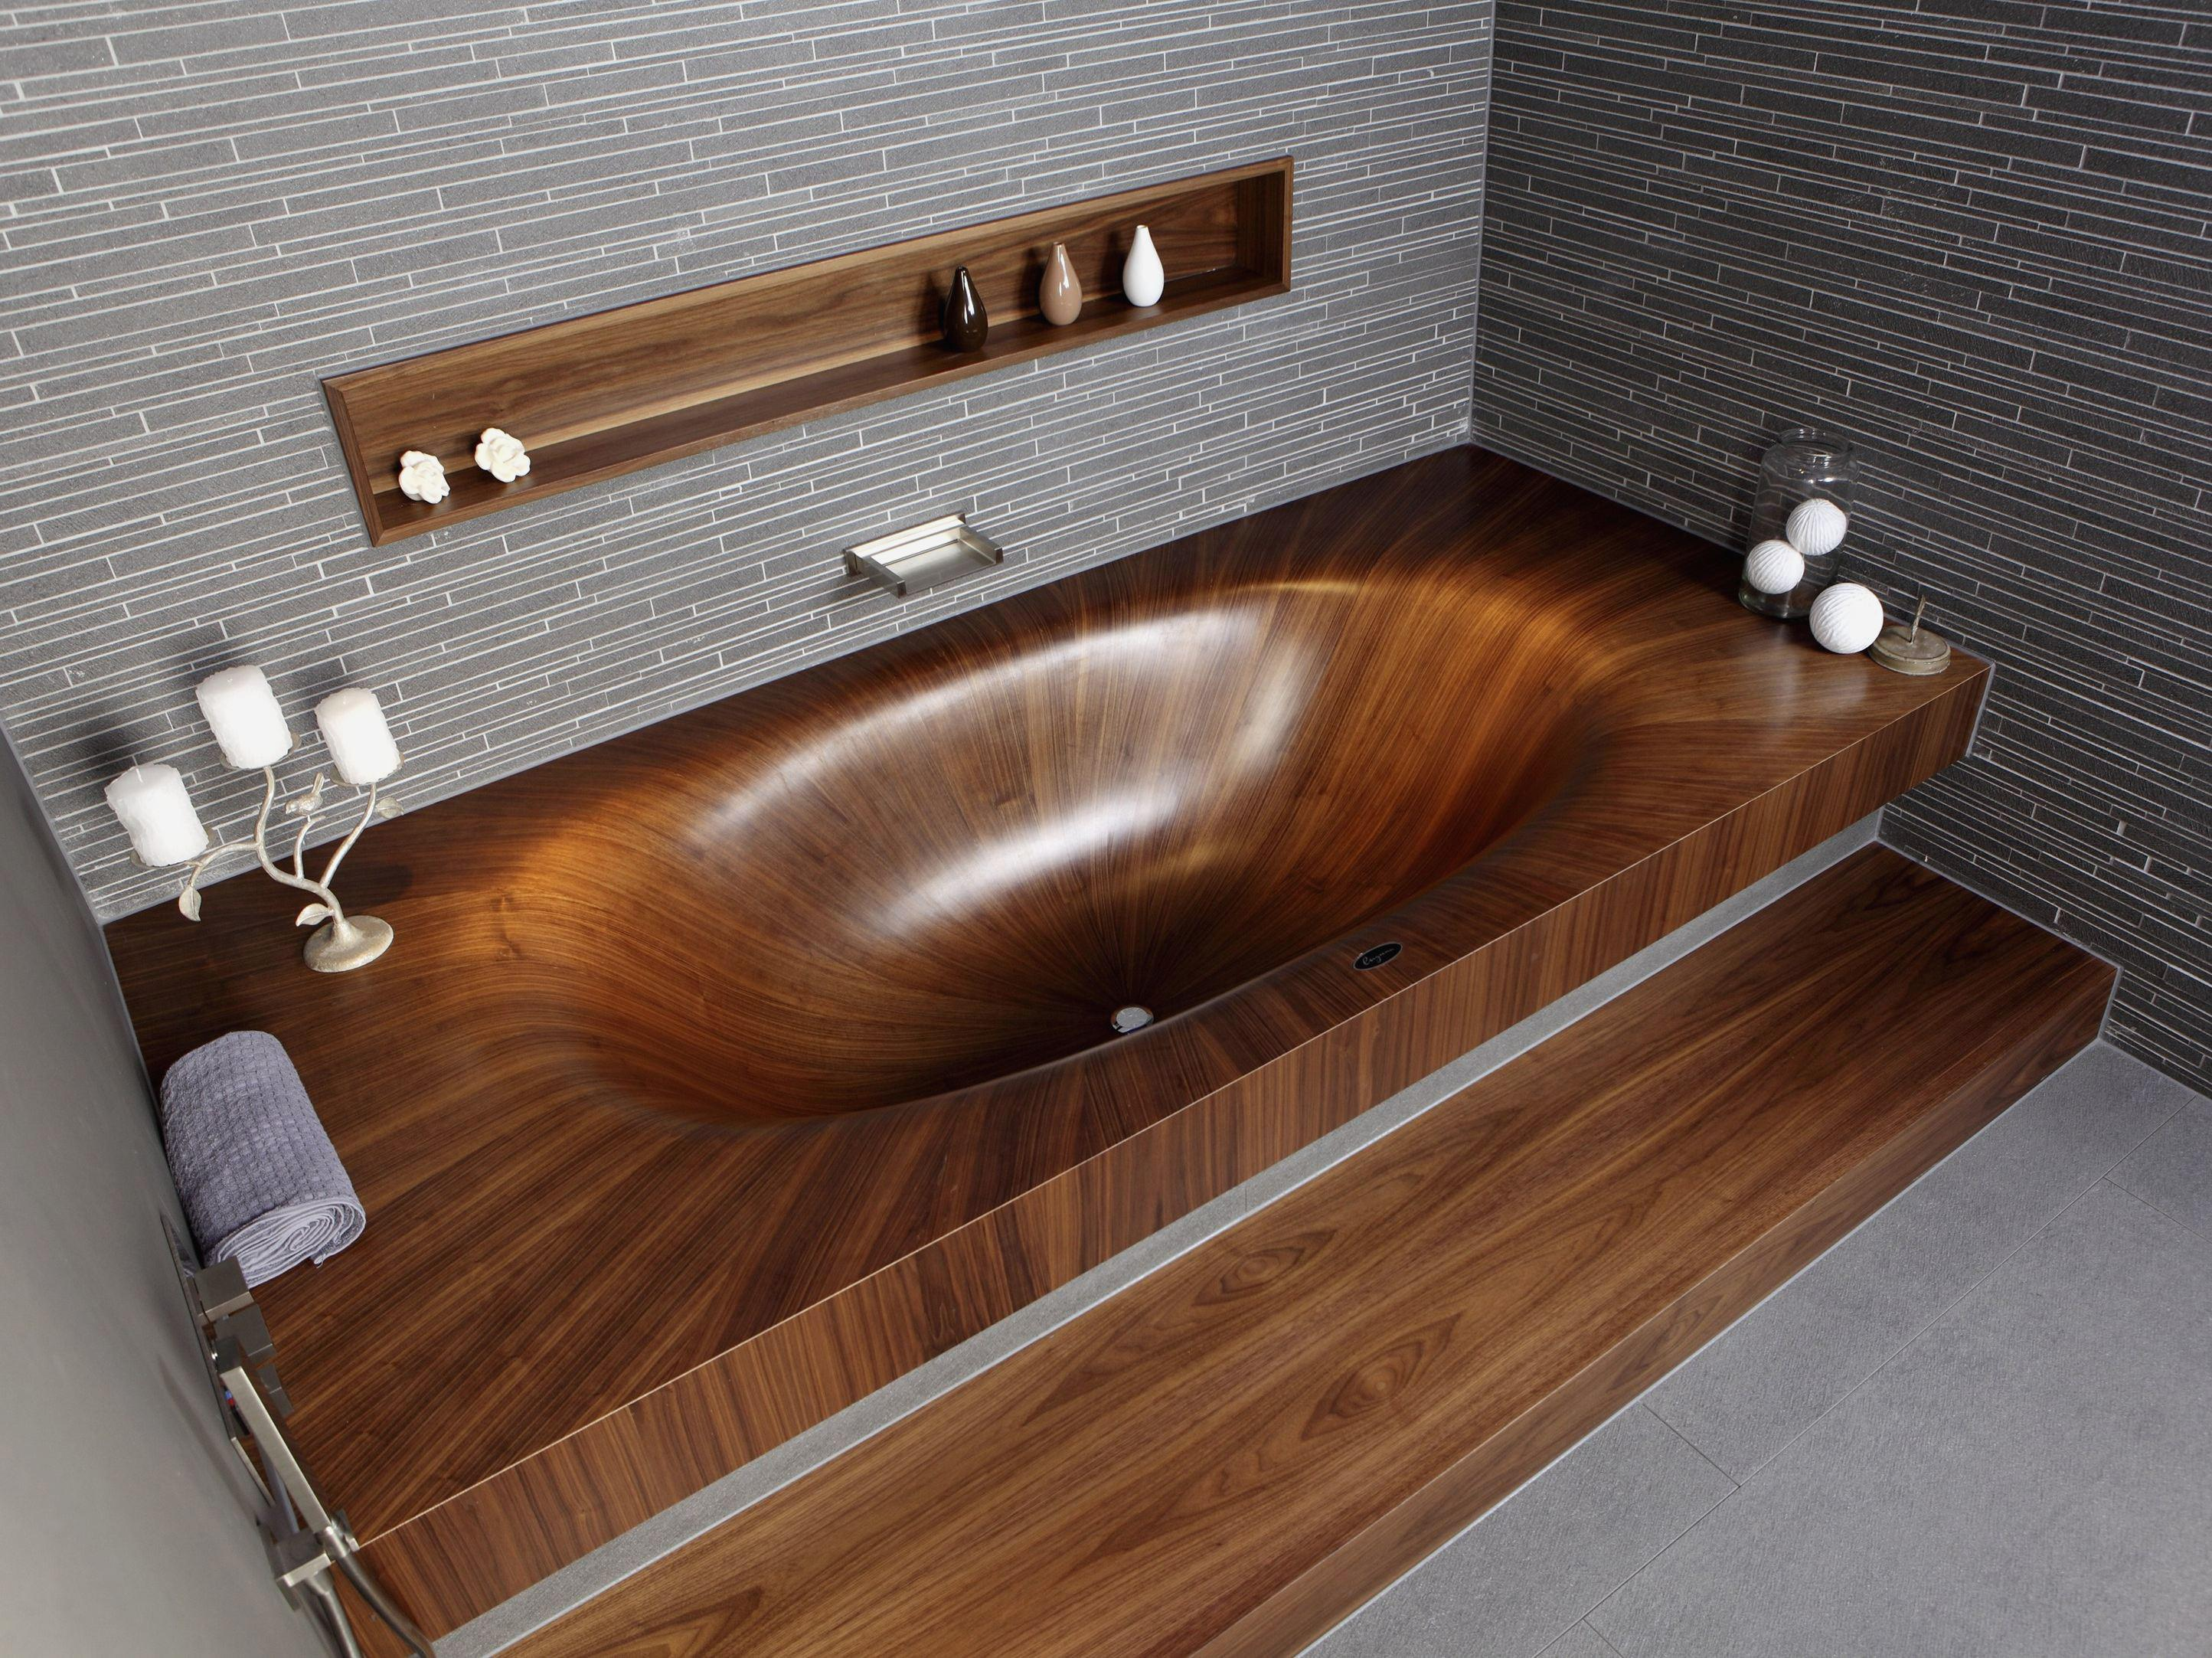 Image of: Awesome Wooden Bathtub Ideas